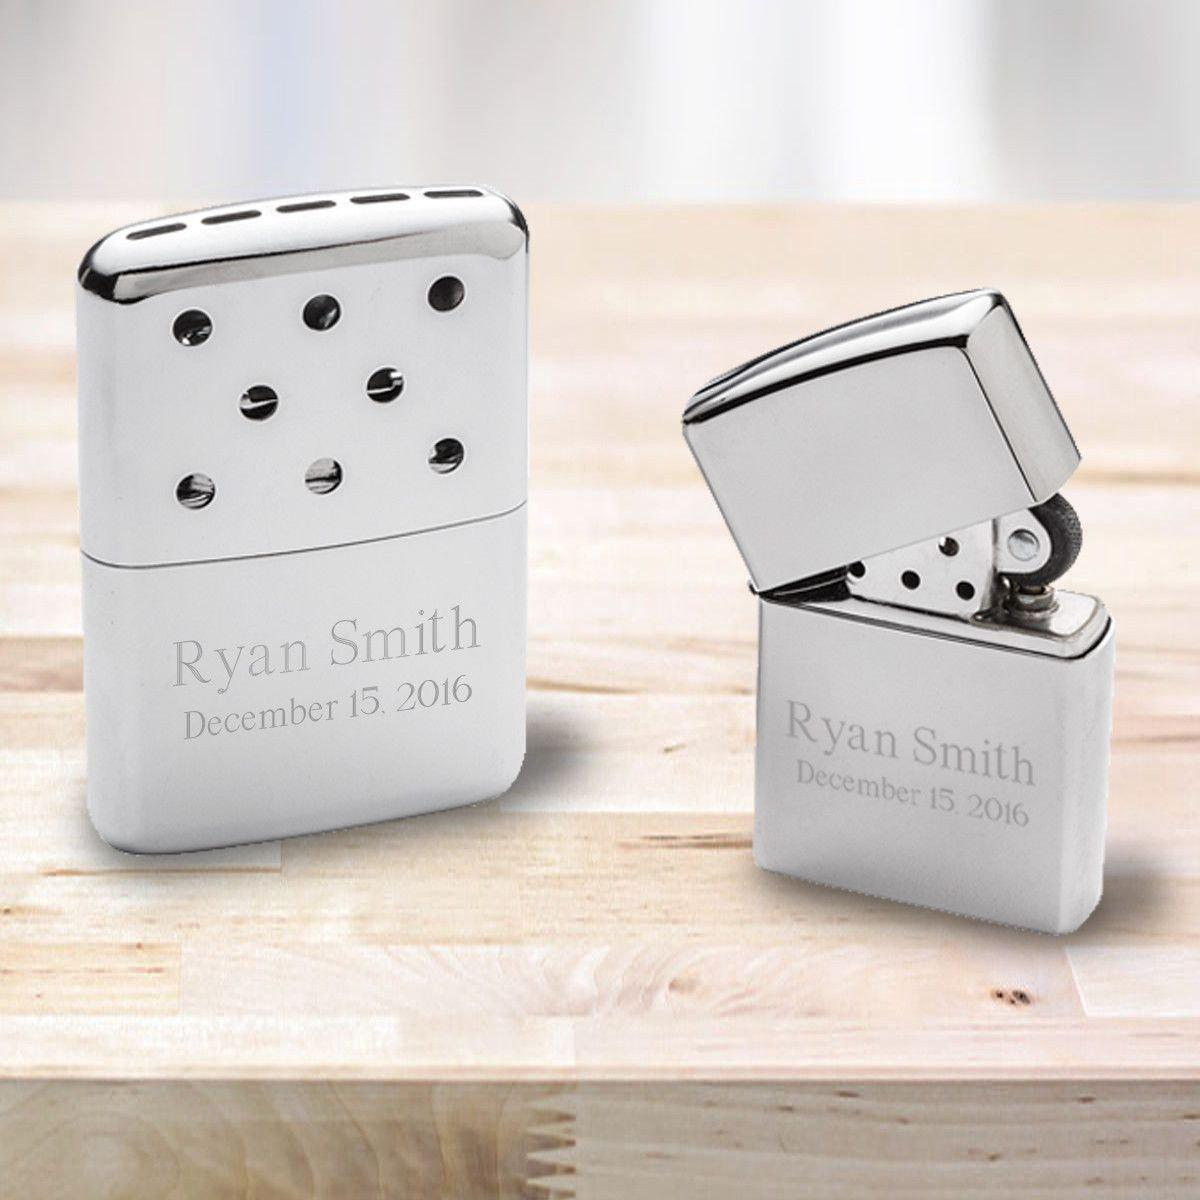 Personalized-Zippo-Hand-Warmer-With-Chrome-Zippo-Lighter